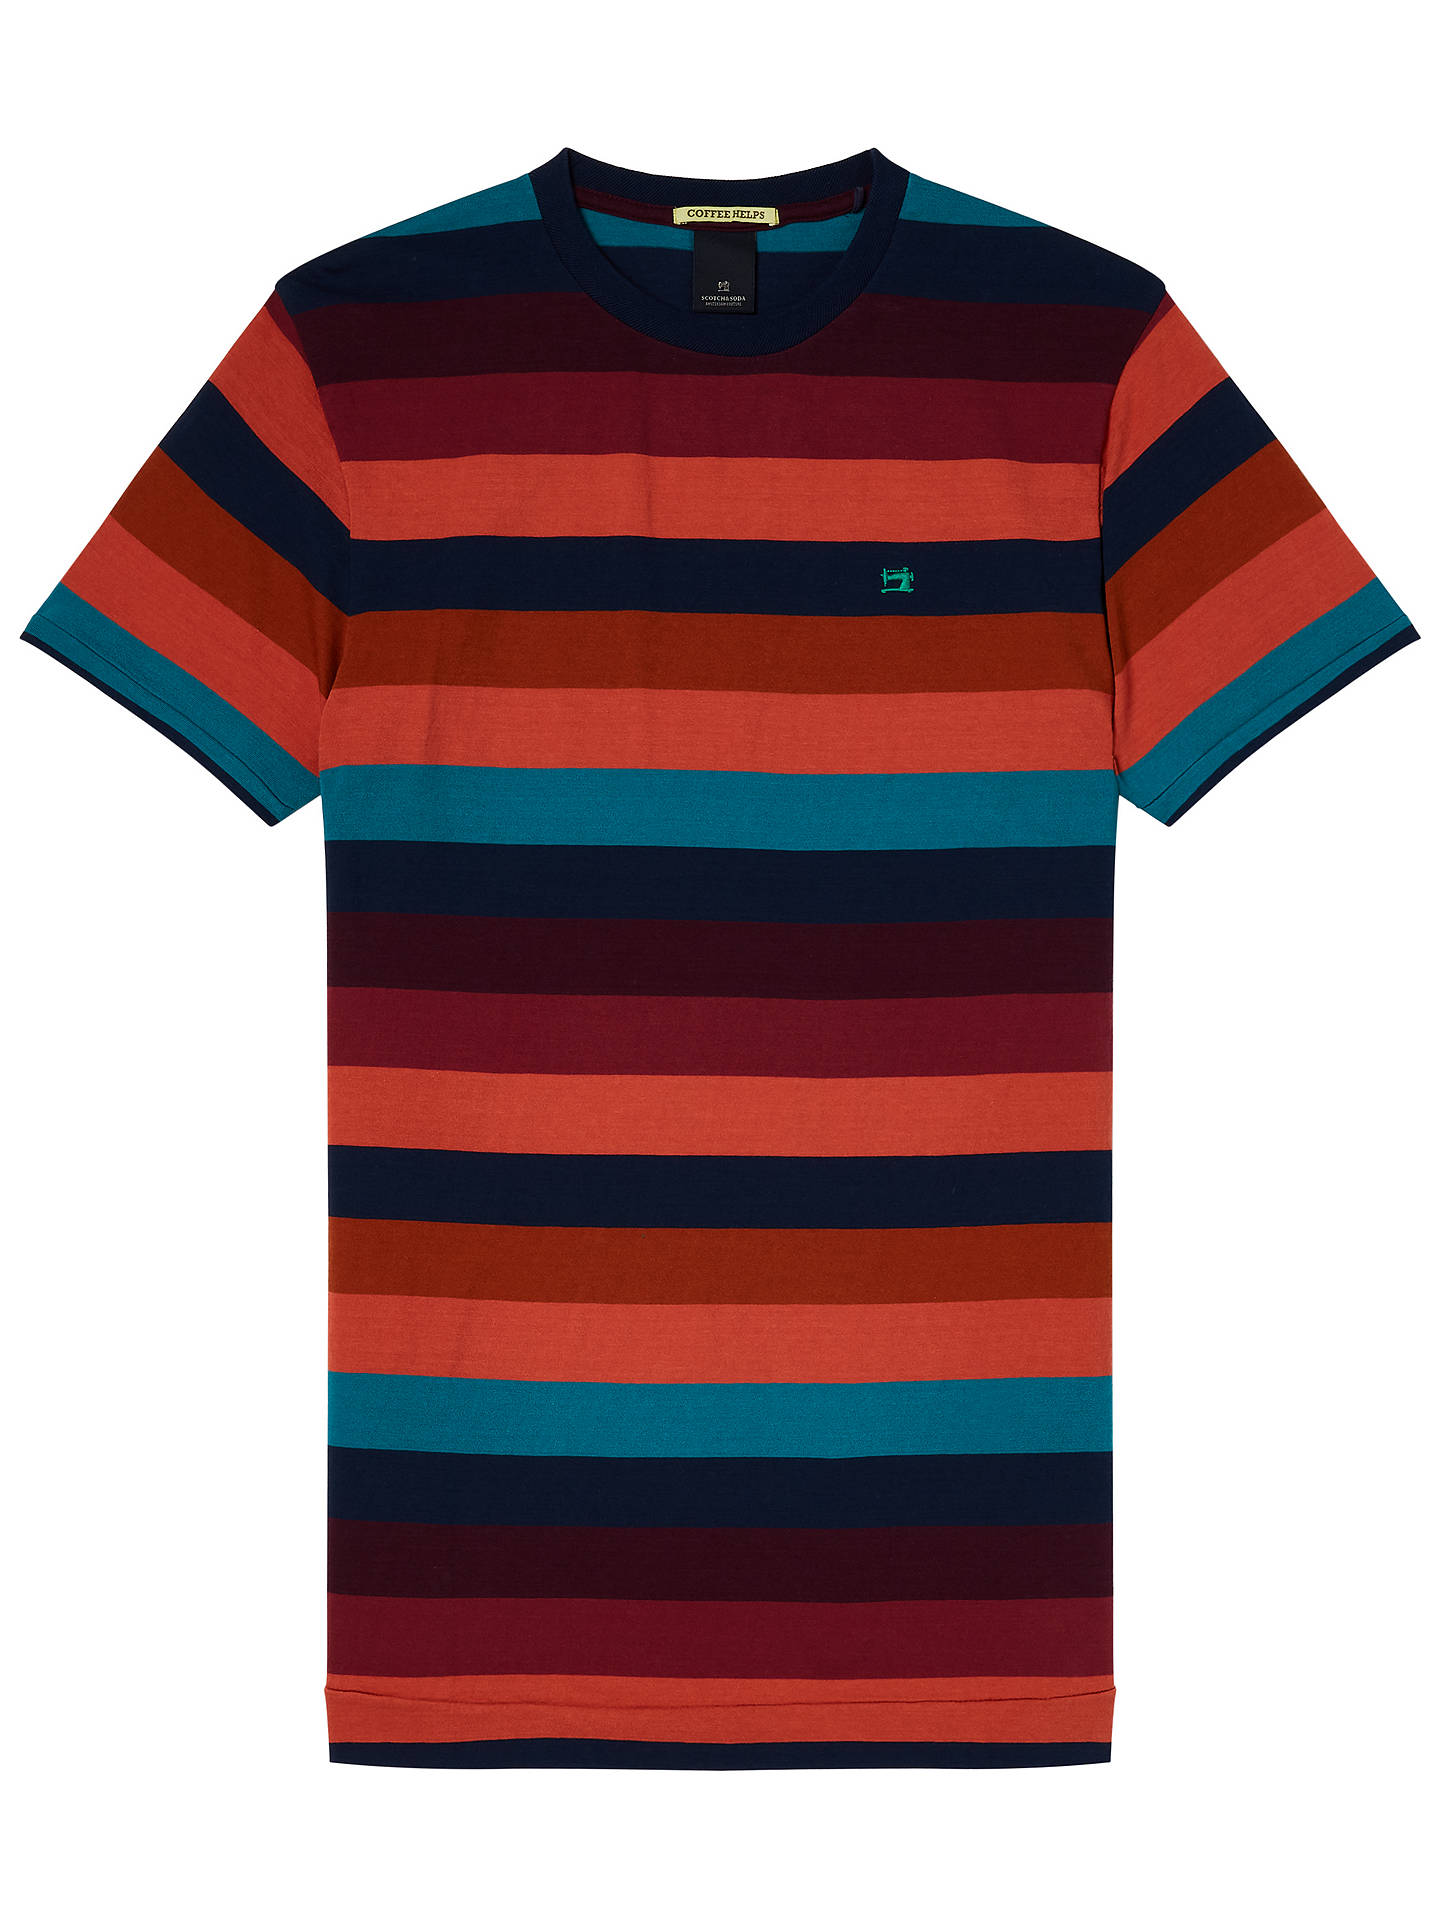 Buy Scotch & Soda Short Sleeve Stripe T-Shirt, Multi, S Online at johnlewis.com